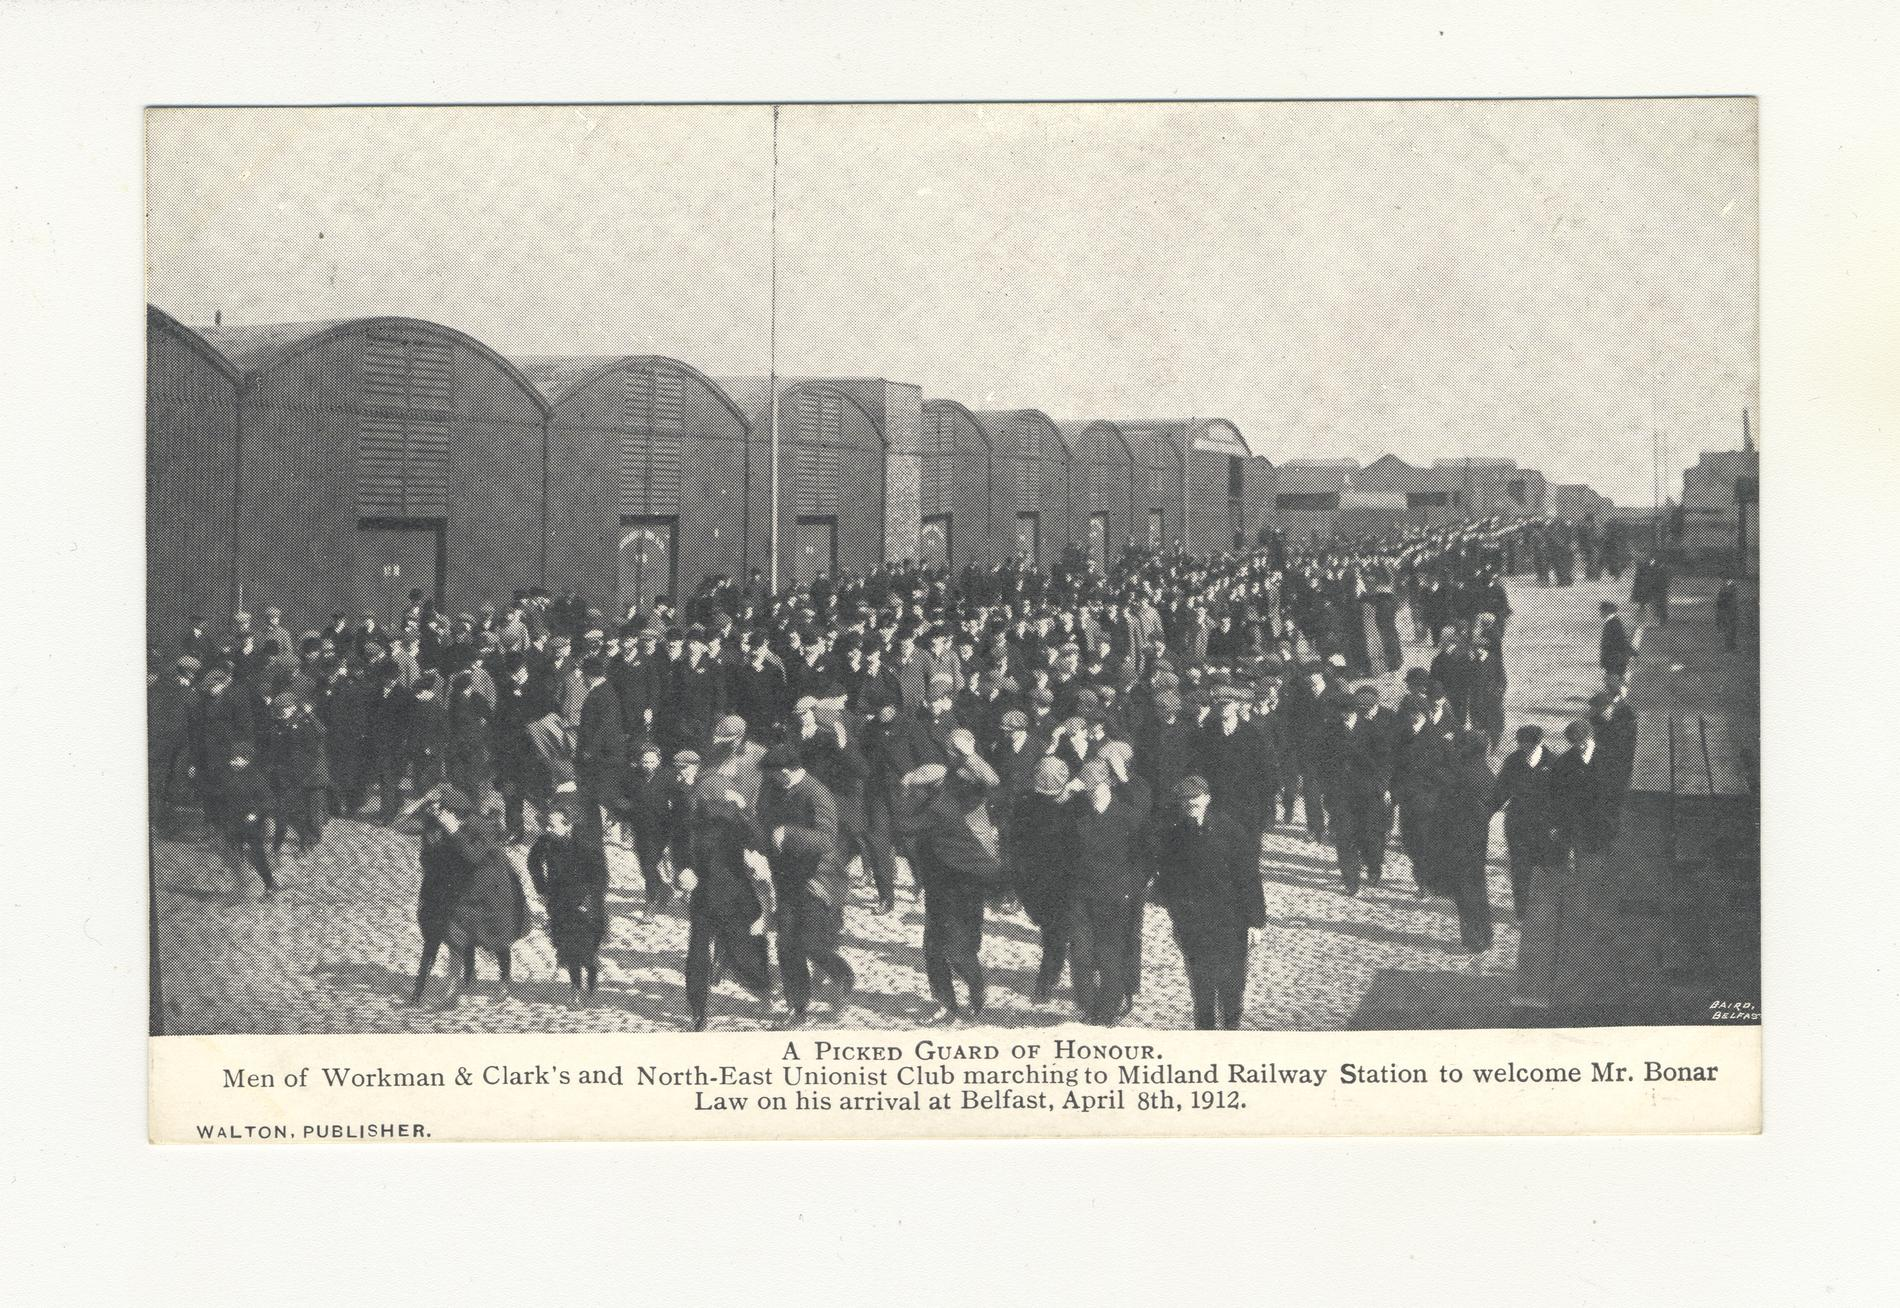 A Picked Guard of Honour (Postcard)